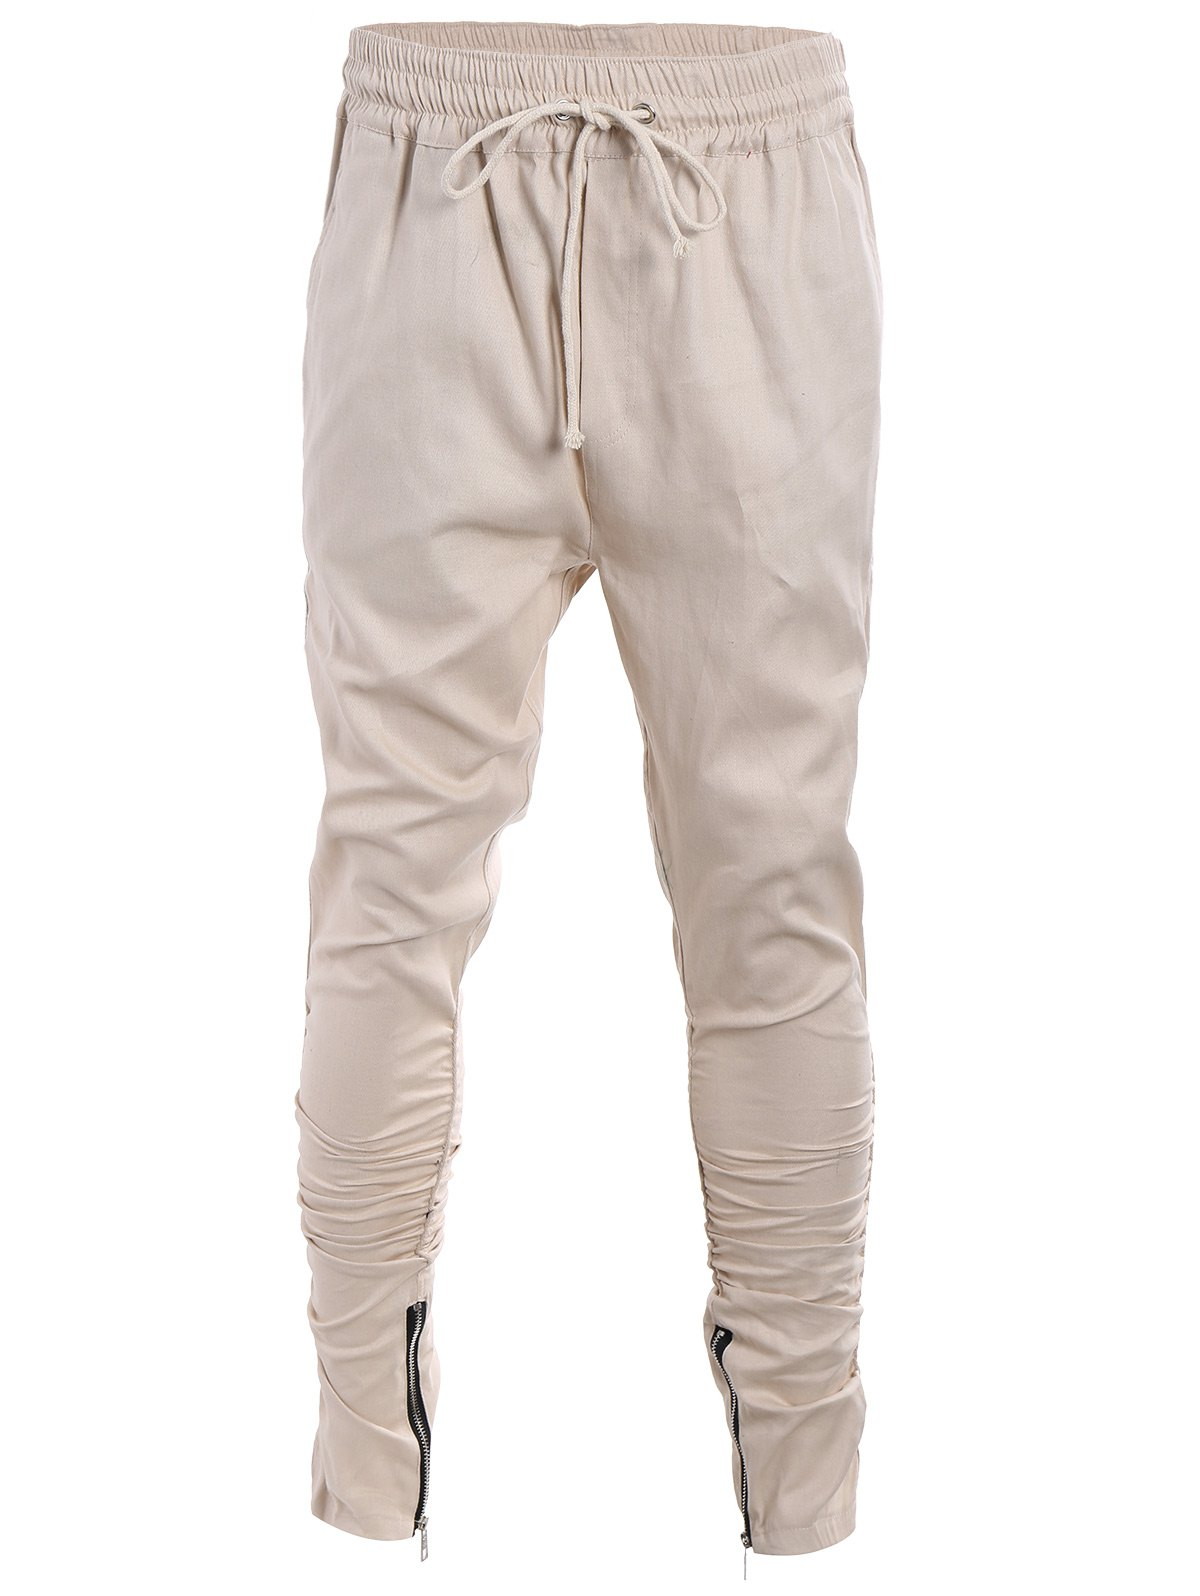 These pants are available in regular and big and tall sizes and they are one of the best slim fit dress pants for men. Banana Republic's Modern Fit Cotton Dress Chino: These stunning percent cotton pants are modern and comfortable, and they offer a polished finish in cotton. These pants are available in Taupe Heather and Dark Grey Heather.